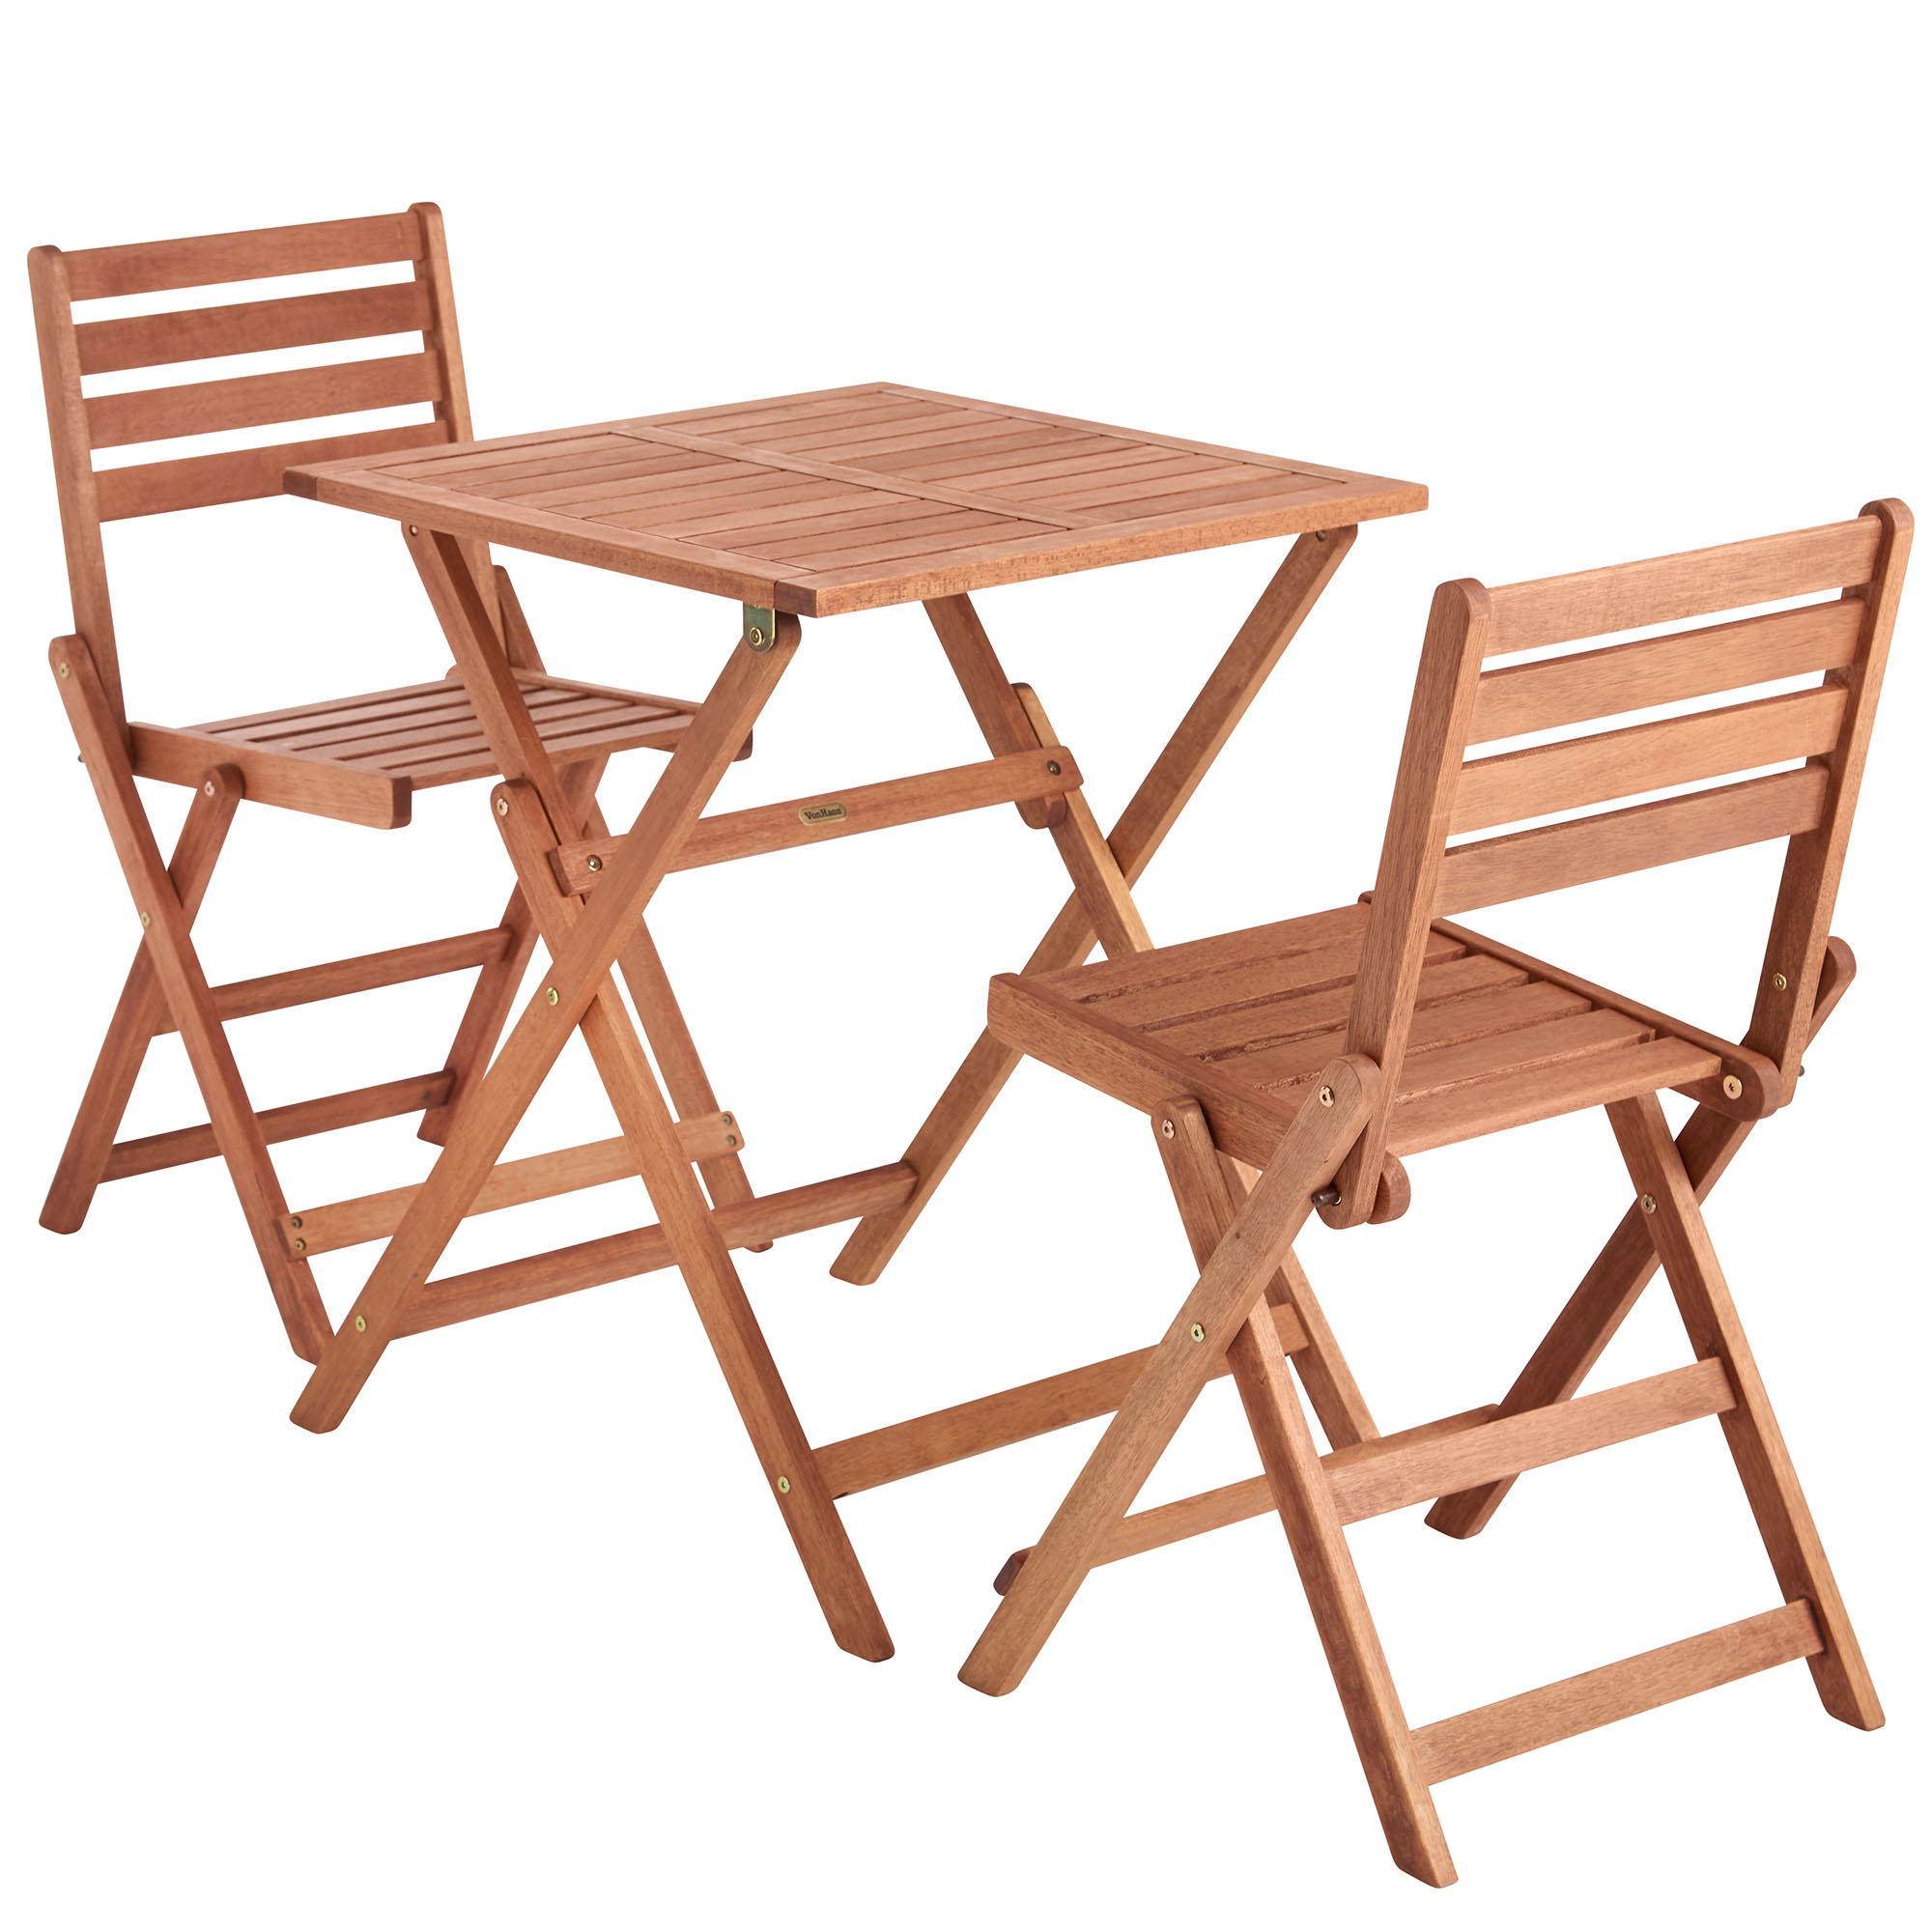 two seater garden table and chairs wooden chair lynchburg vonhaus 2 seat patio outdoor